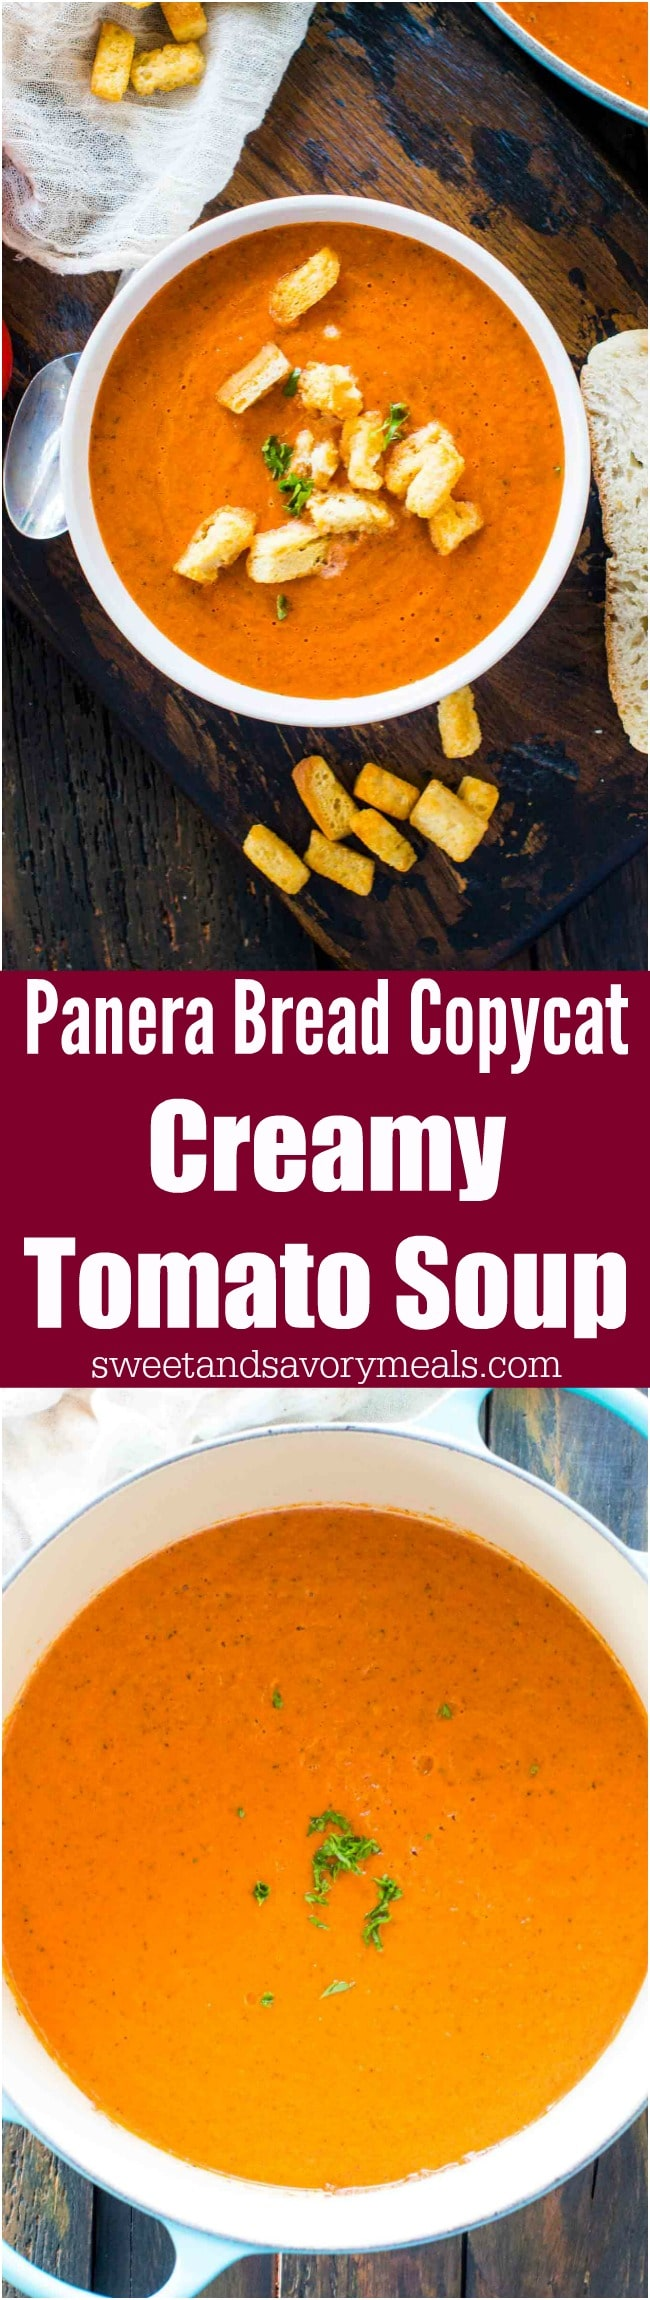 Panera Bread Creamy Tomato Soup Copycat is the chain's classic, famous, creamy soup that will warm your soul and make your taste buds happy.